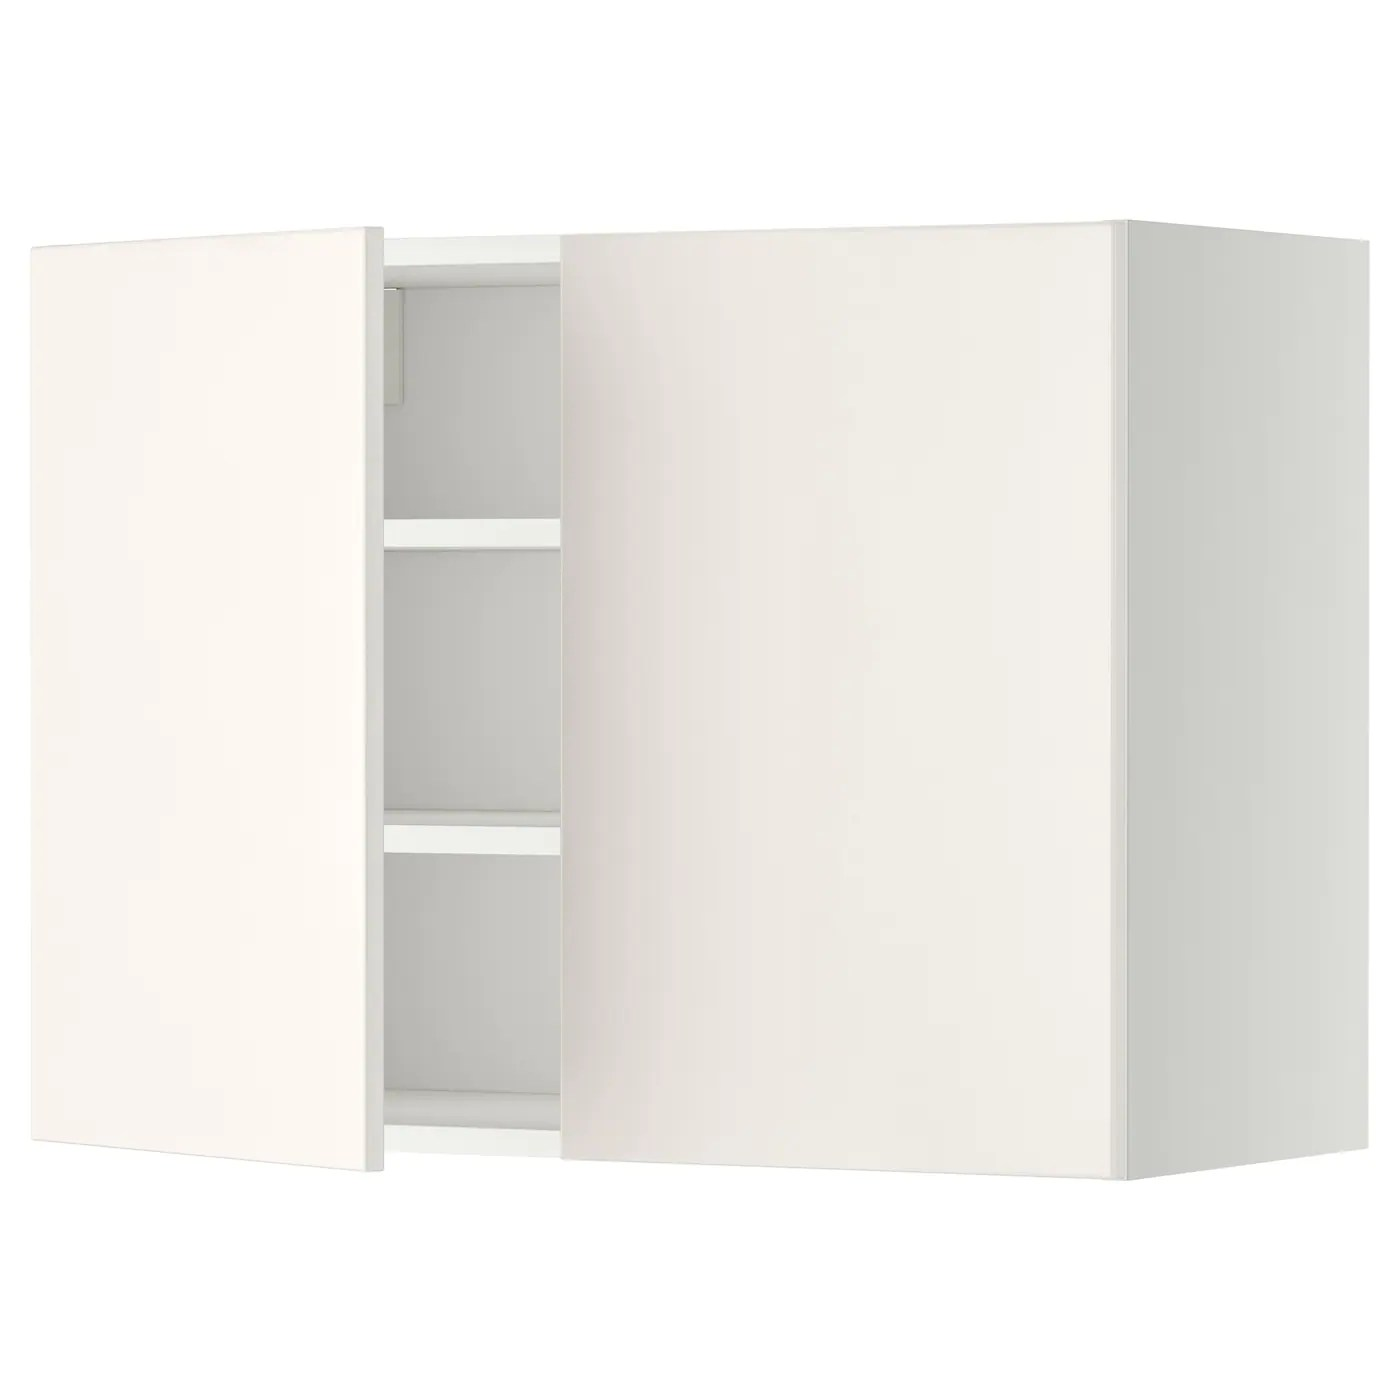 Ikea Küchenschrank Veddinge Metod Wall Cabinet With Shelves 2 Doors White Veddinge